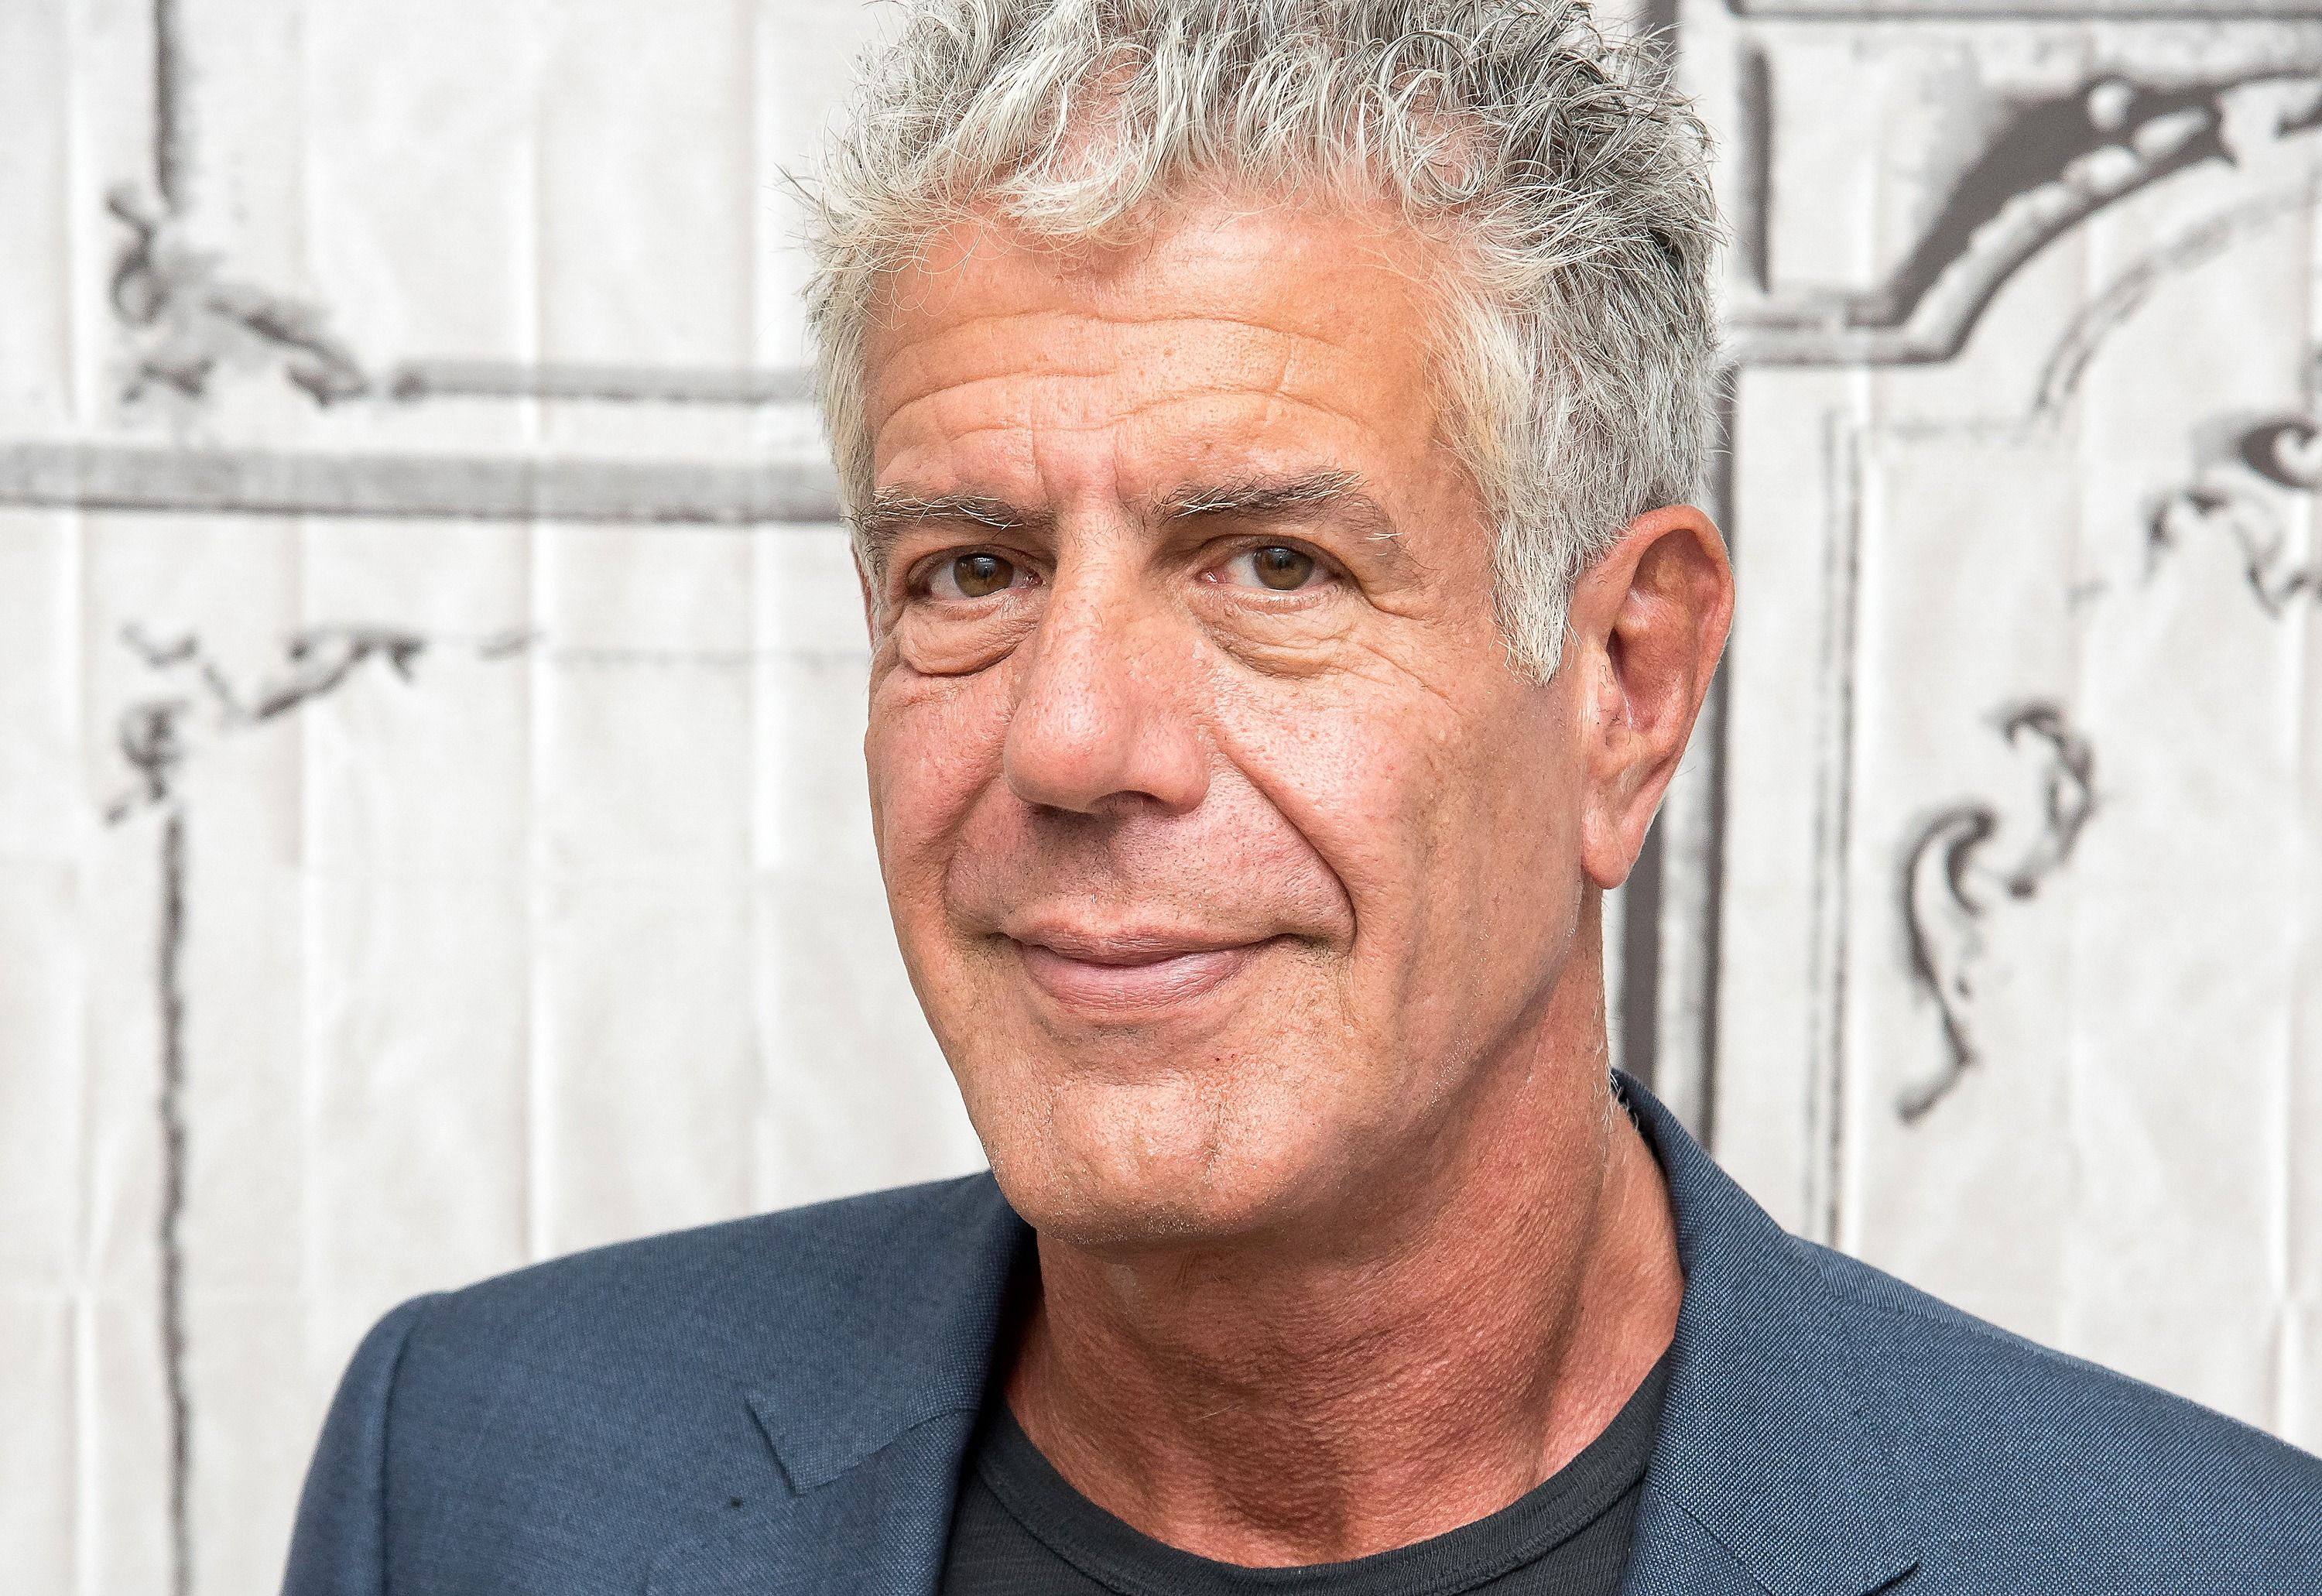 Anthony Bourdain's Family Is Hosting An Estate Sale With Over 200 Of His Personal Belongings